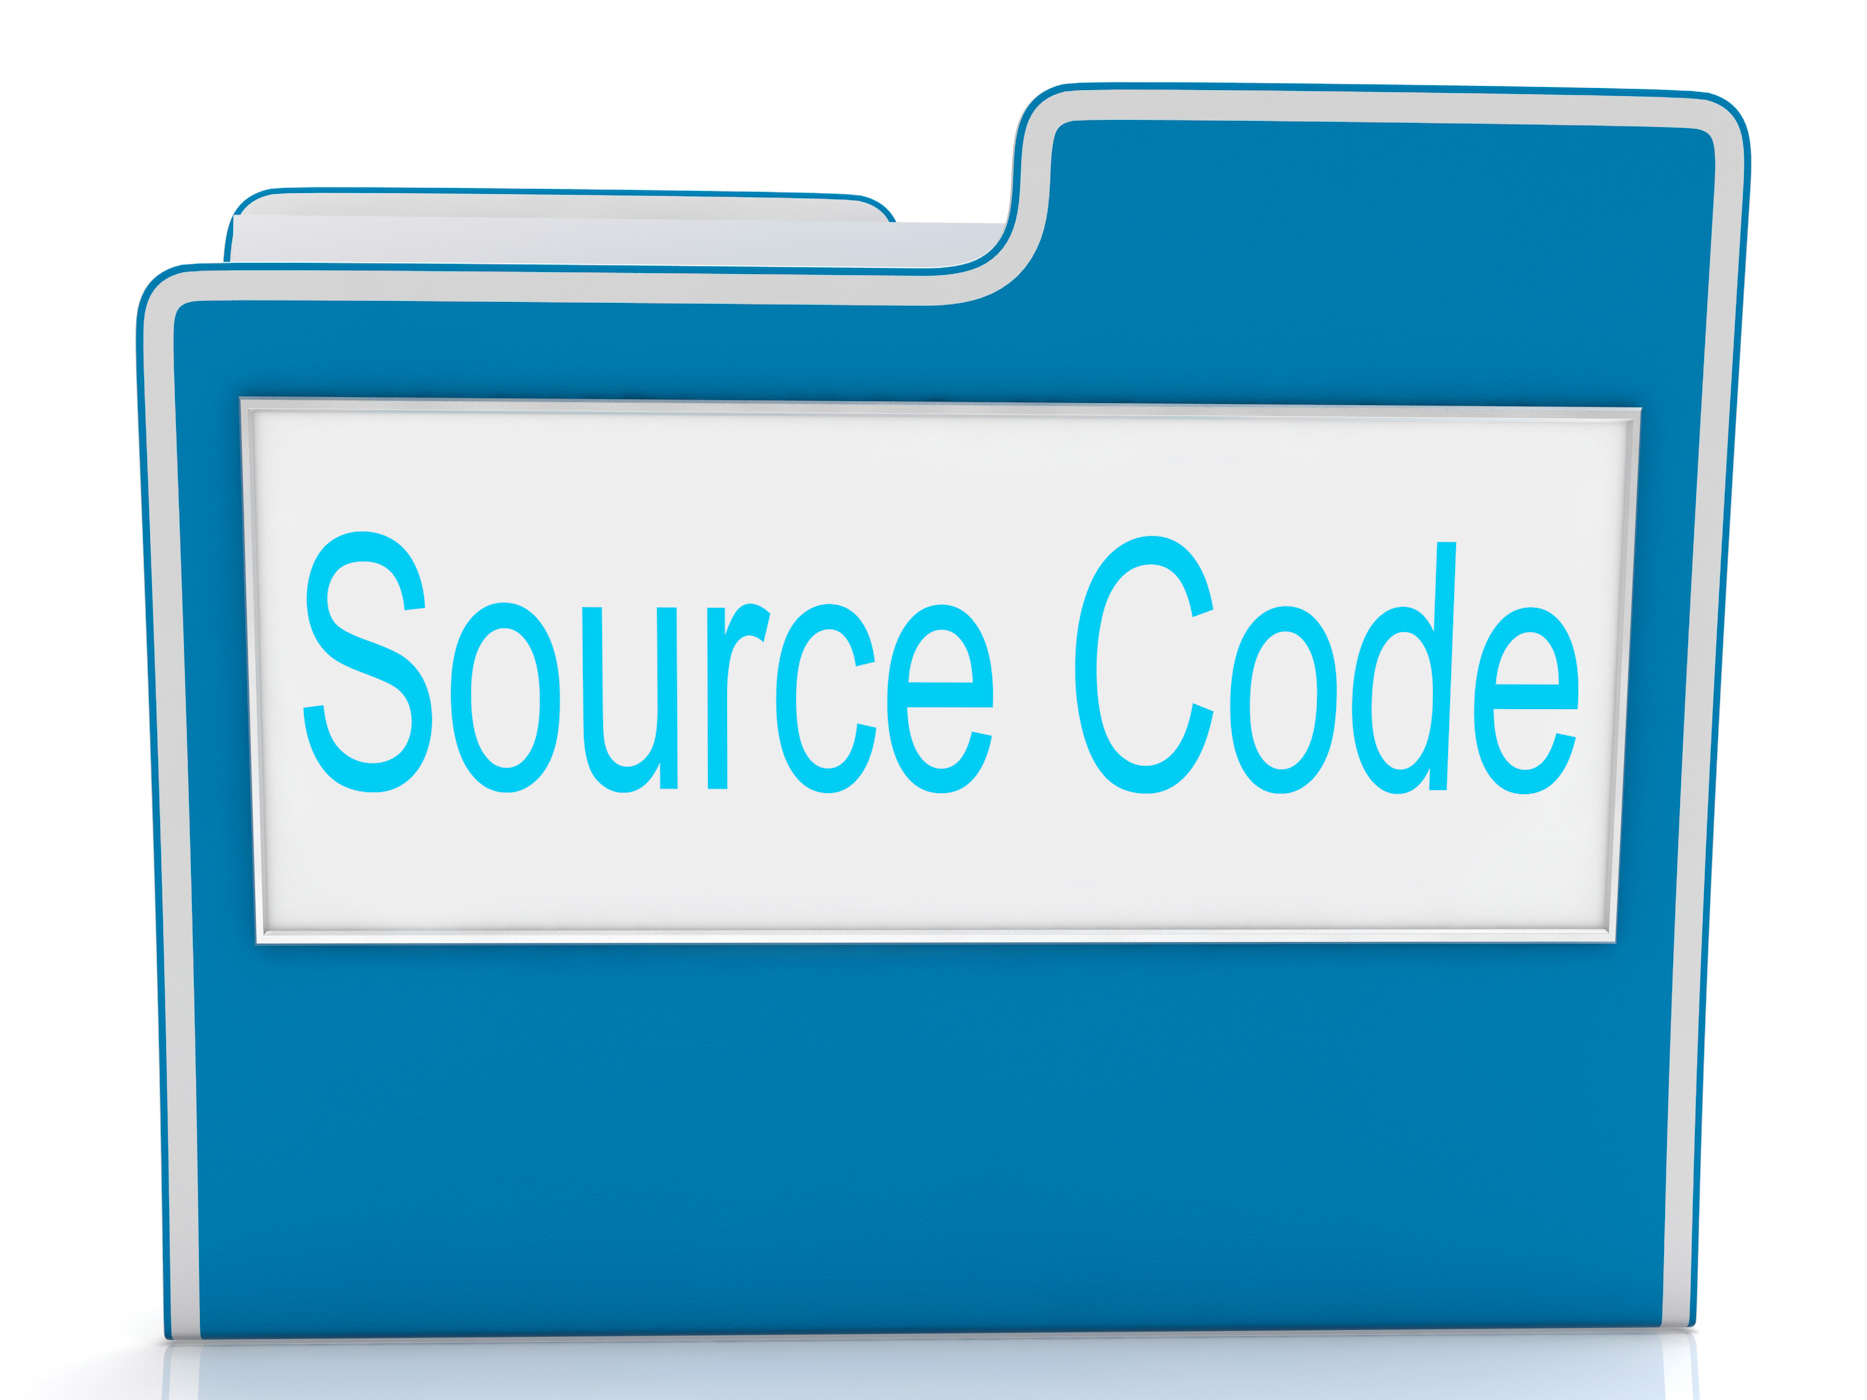 Source code shows document binder and folders photo